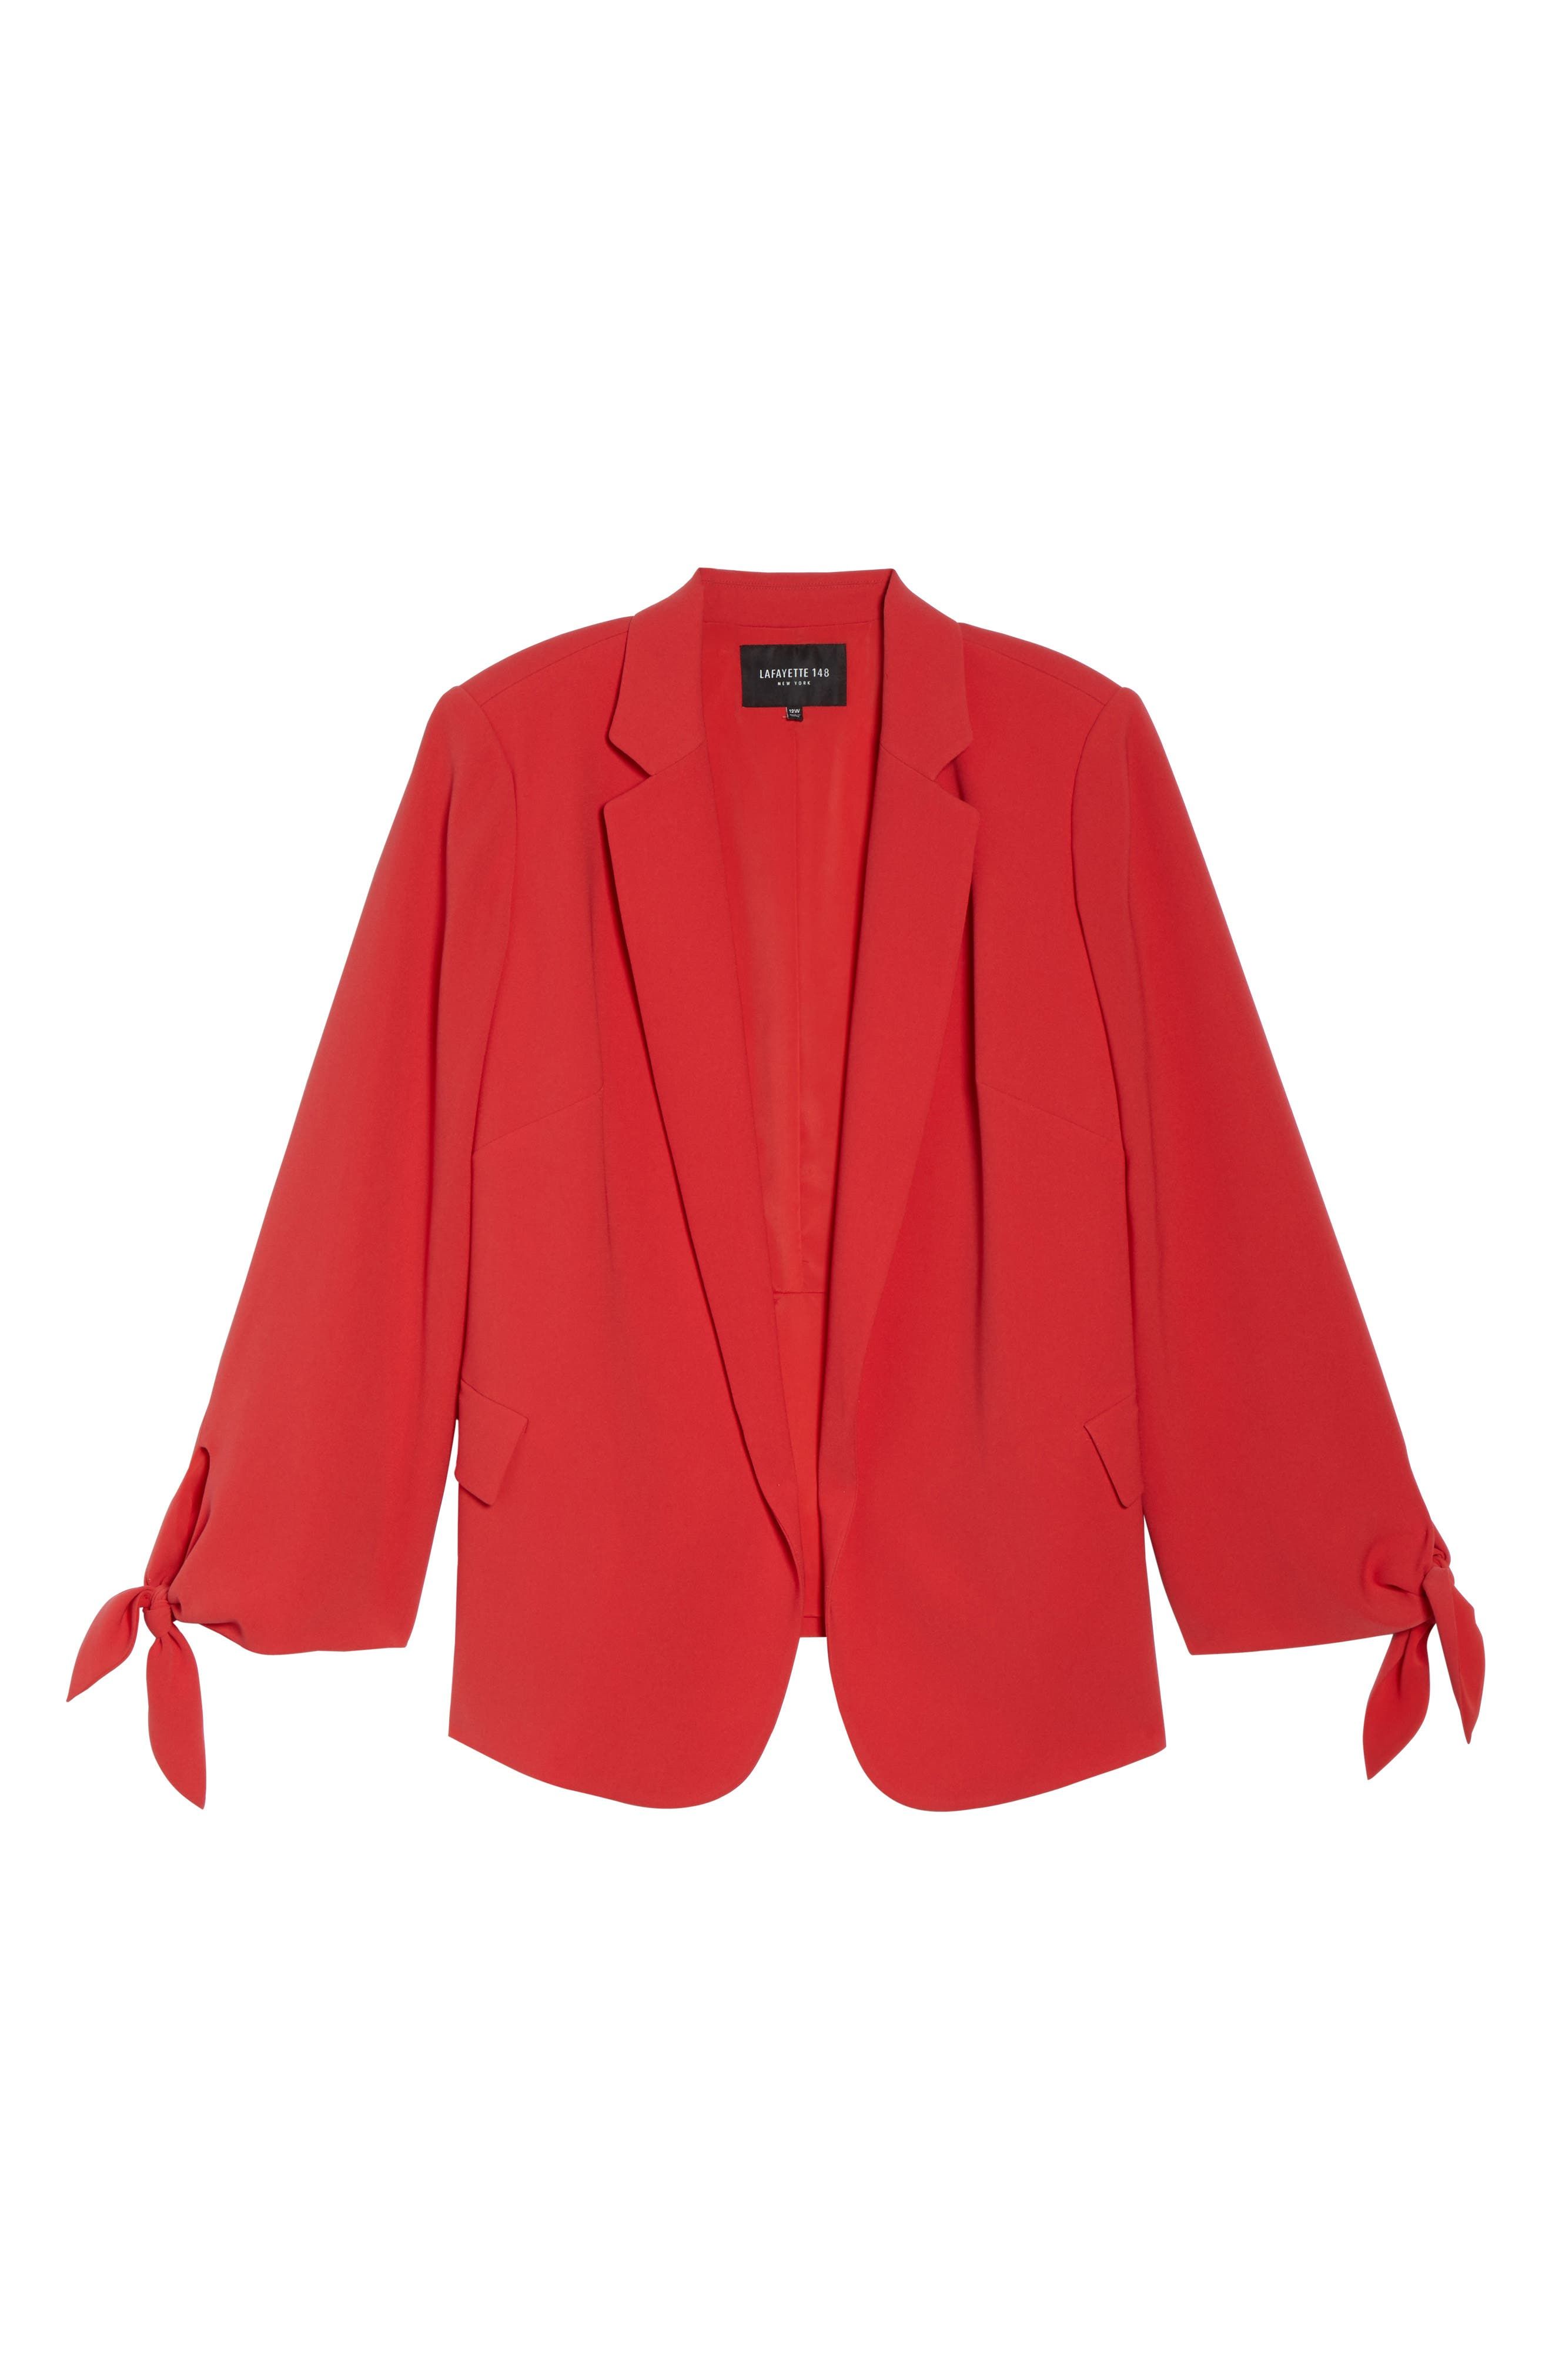 Bria Finesse Crepe Jacket,                             Alternate thumbnail 6, color,                             Salsa